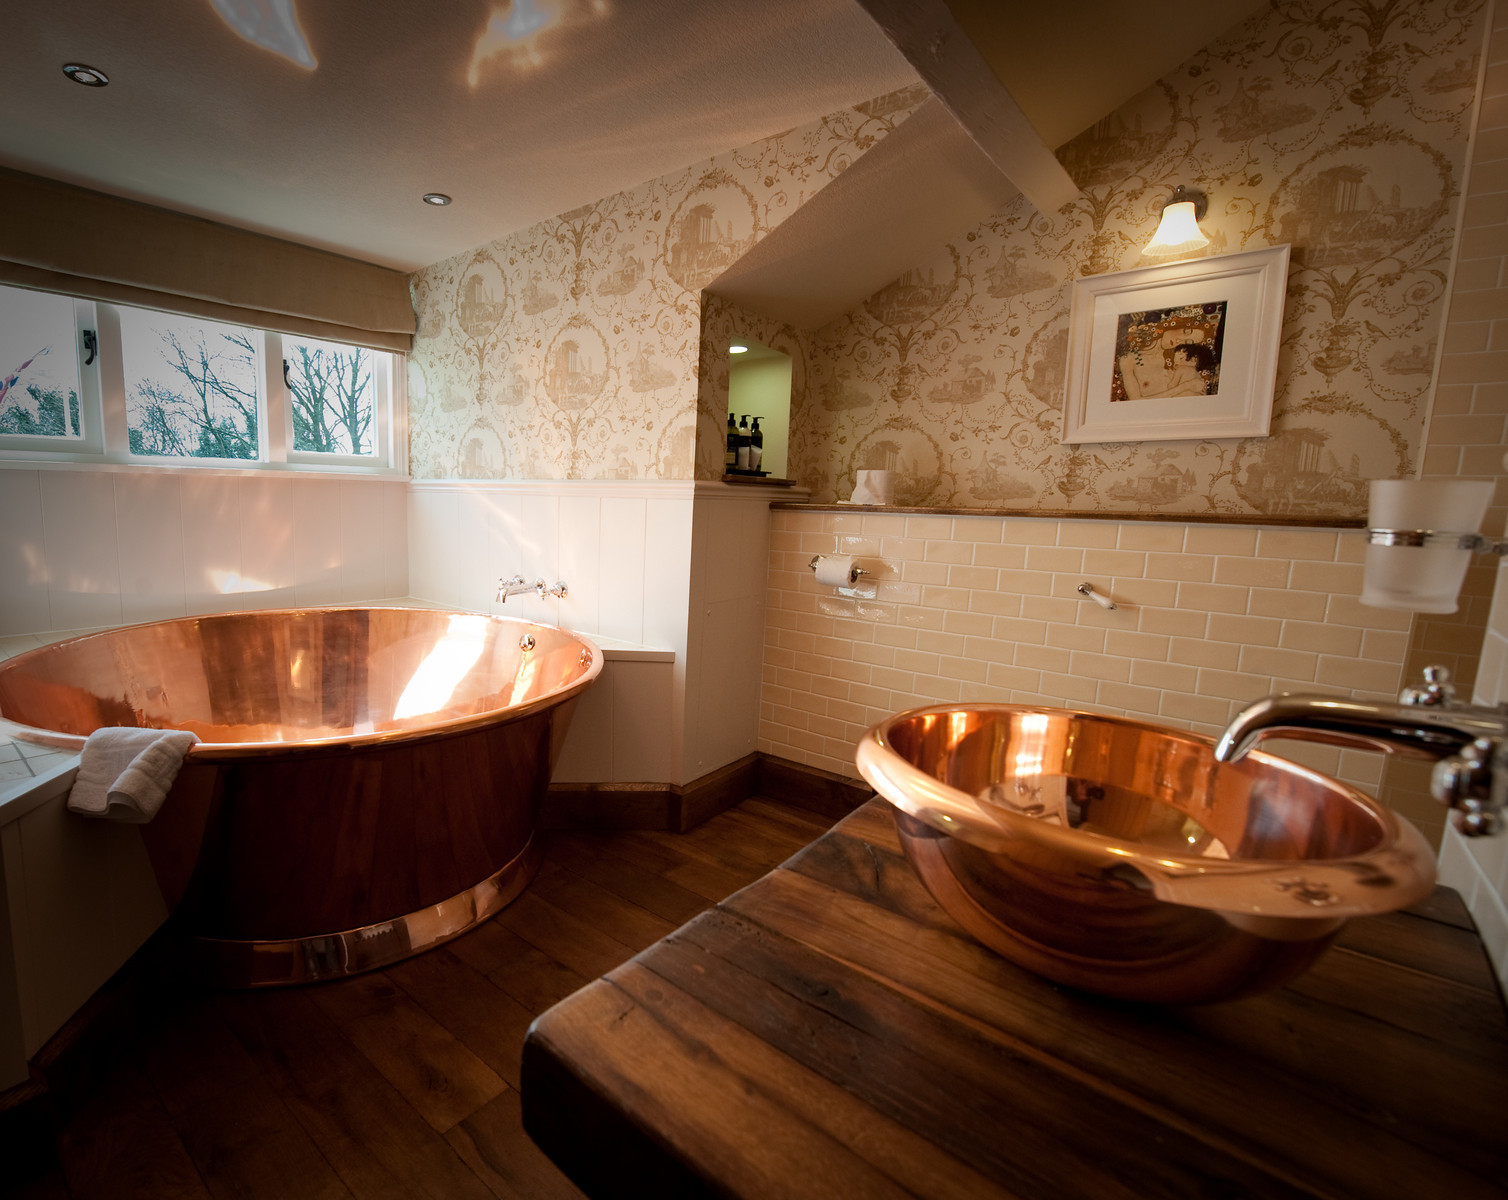 Large Copper Baths at The Wild Boar to relax before your big day